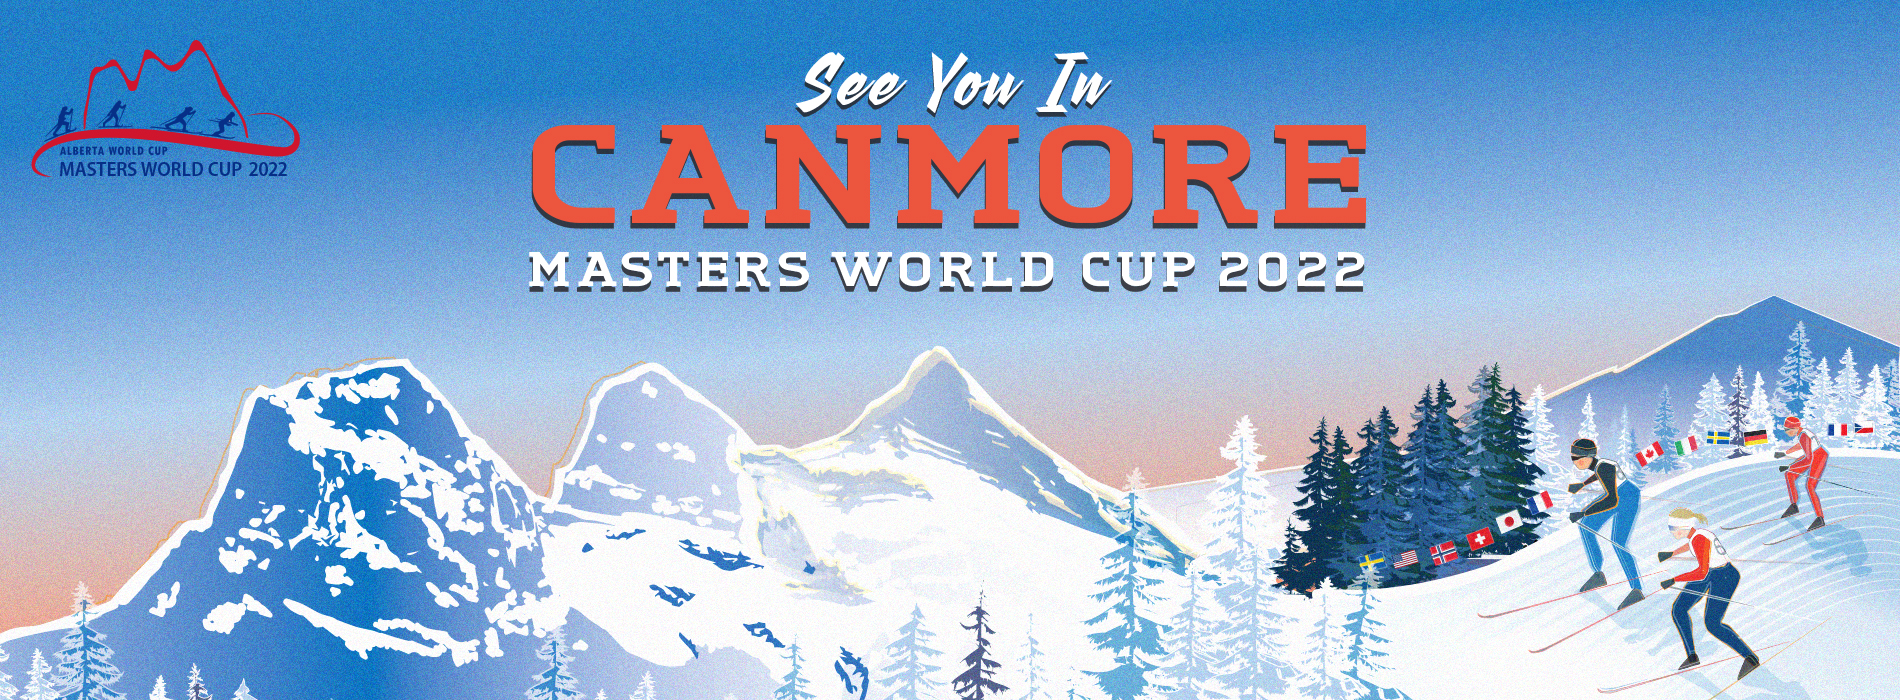 2021 Masters World Cup Canmore Information